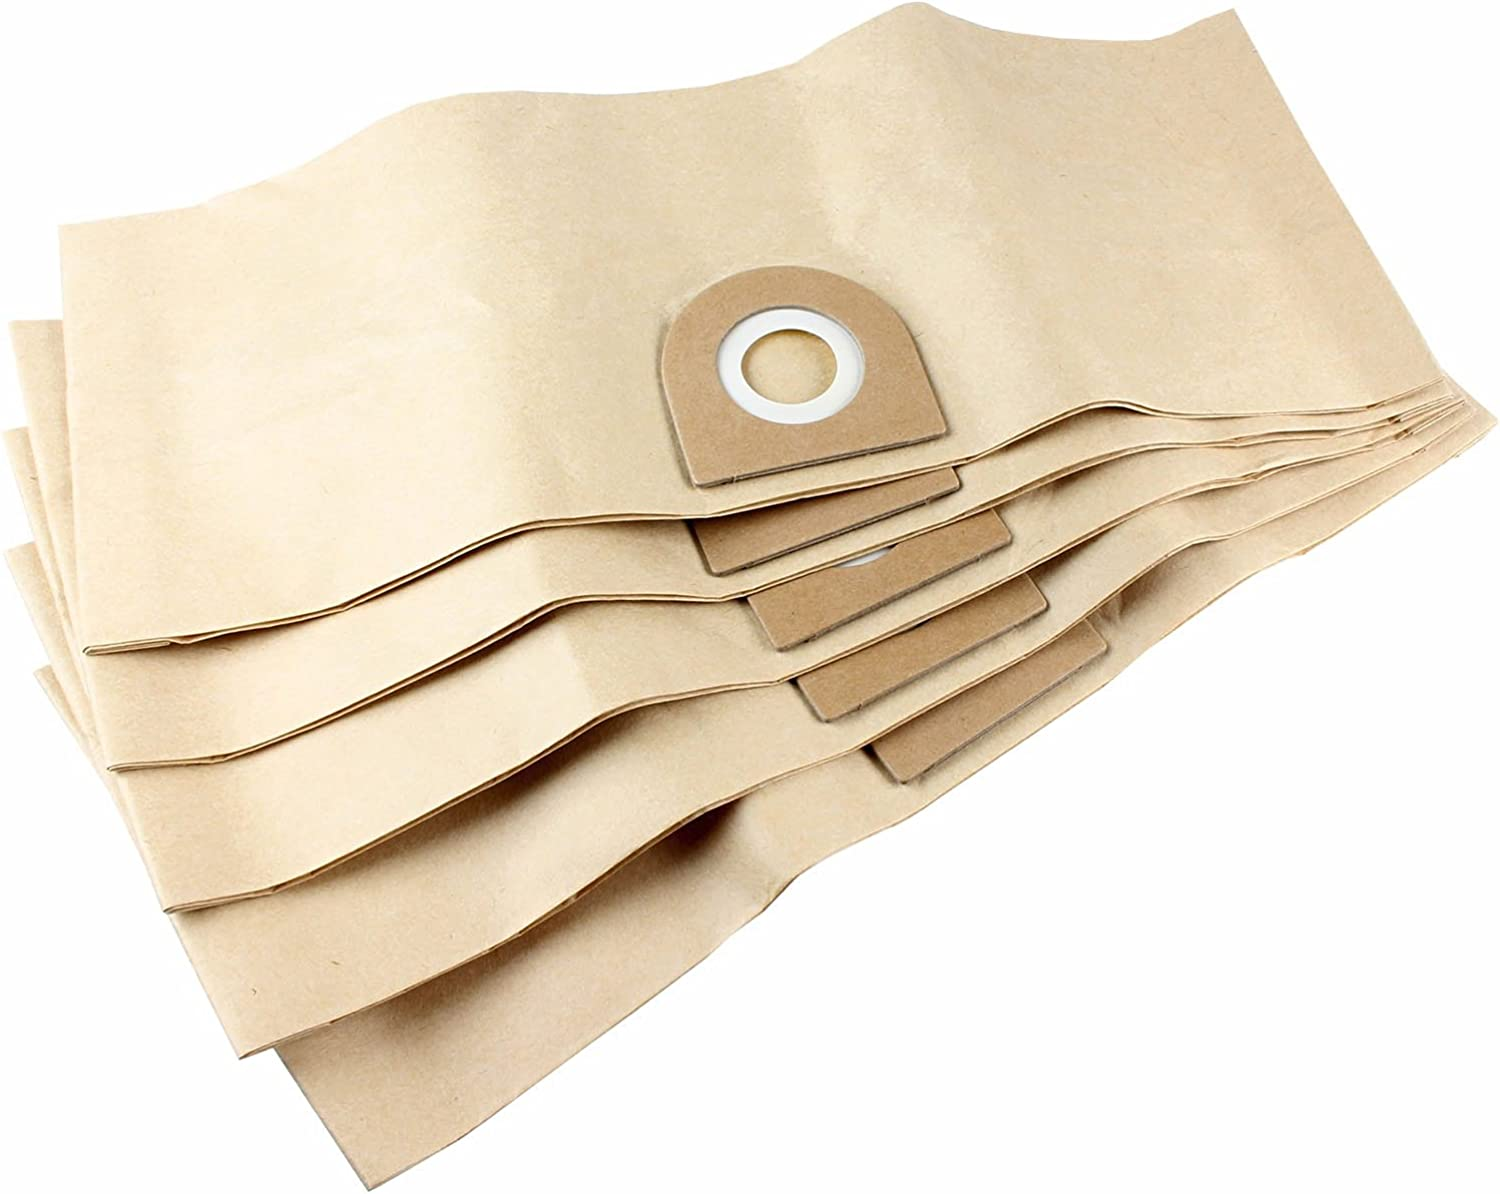 *NEW* Vacuum Cleaner Dust Bags Select 5-20 Filters for Miele Models in Bar